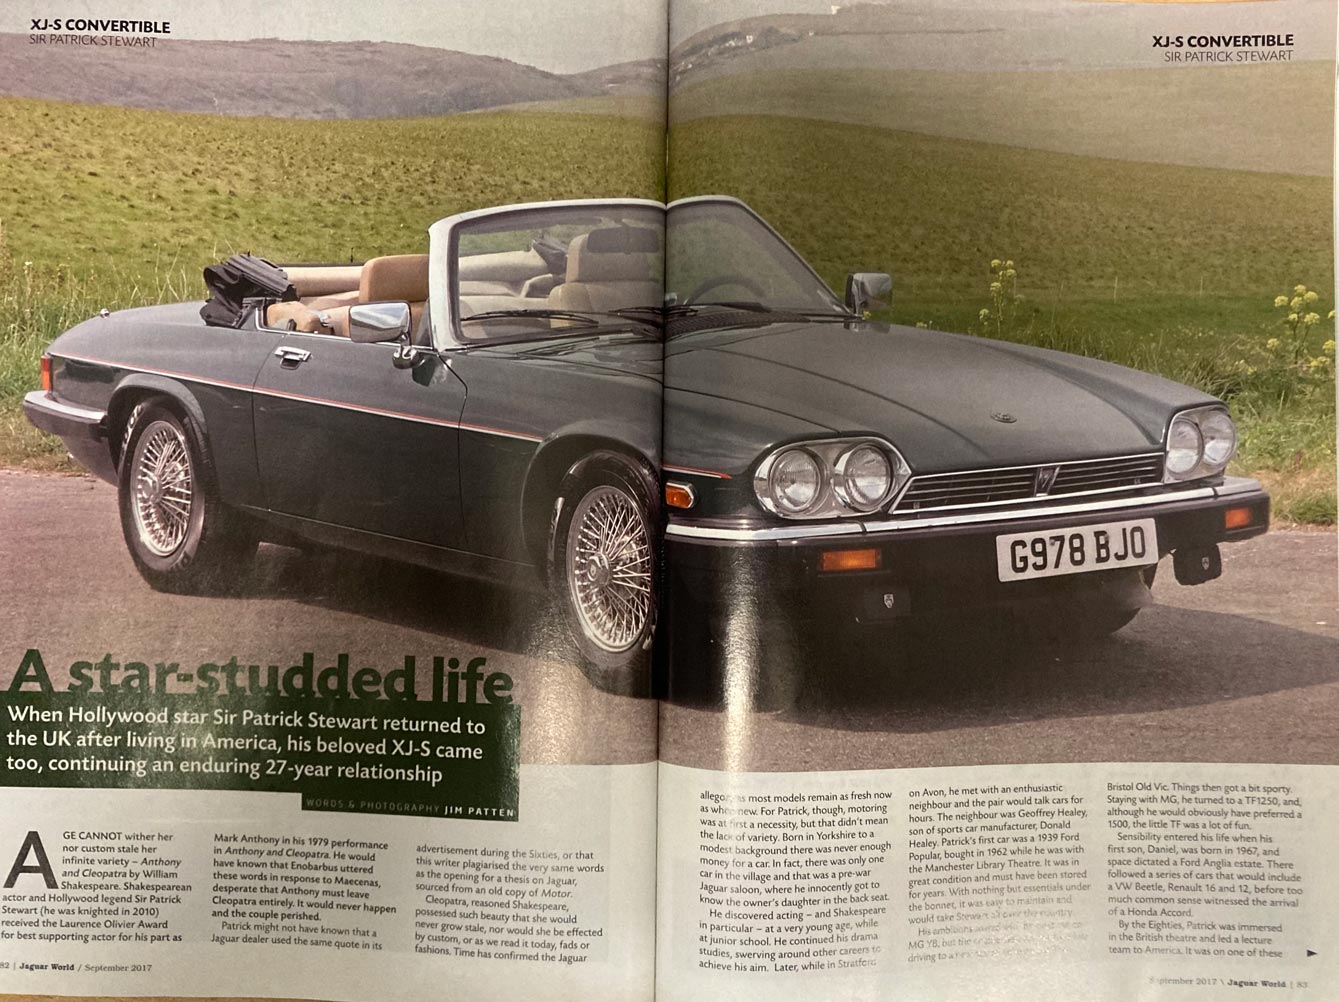 Picture of magazine showing Sir Patrick Stewart's car